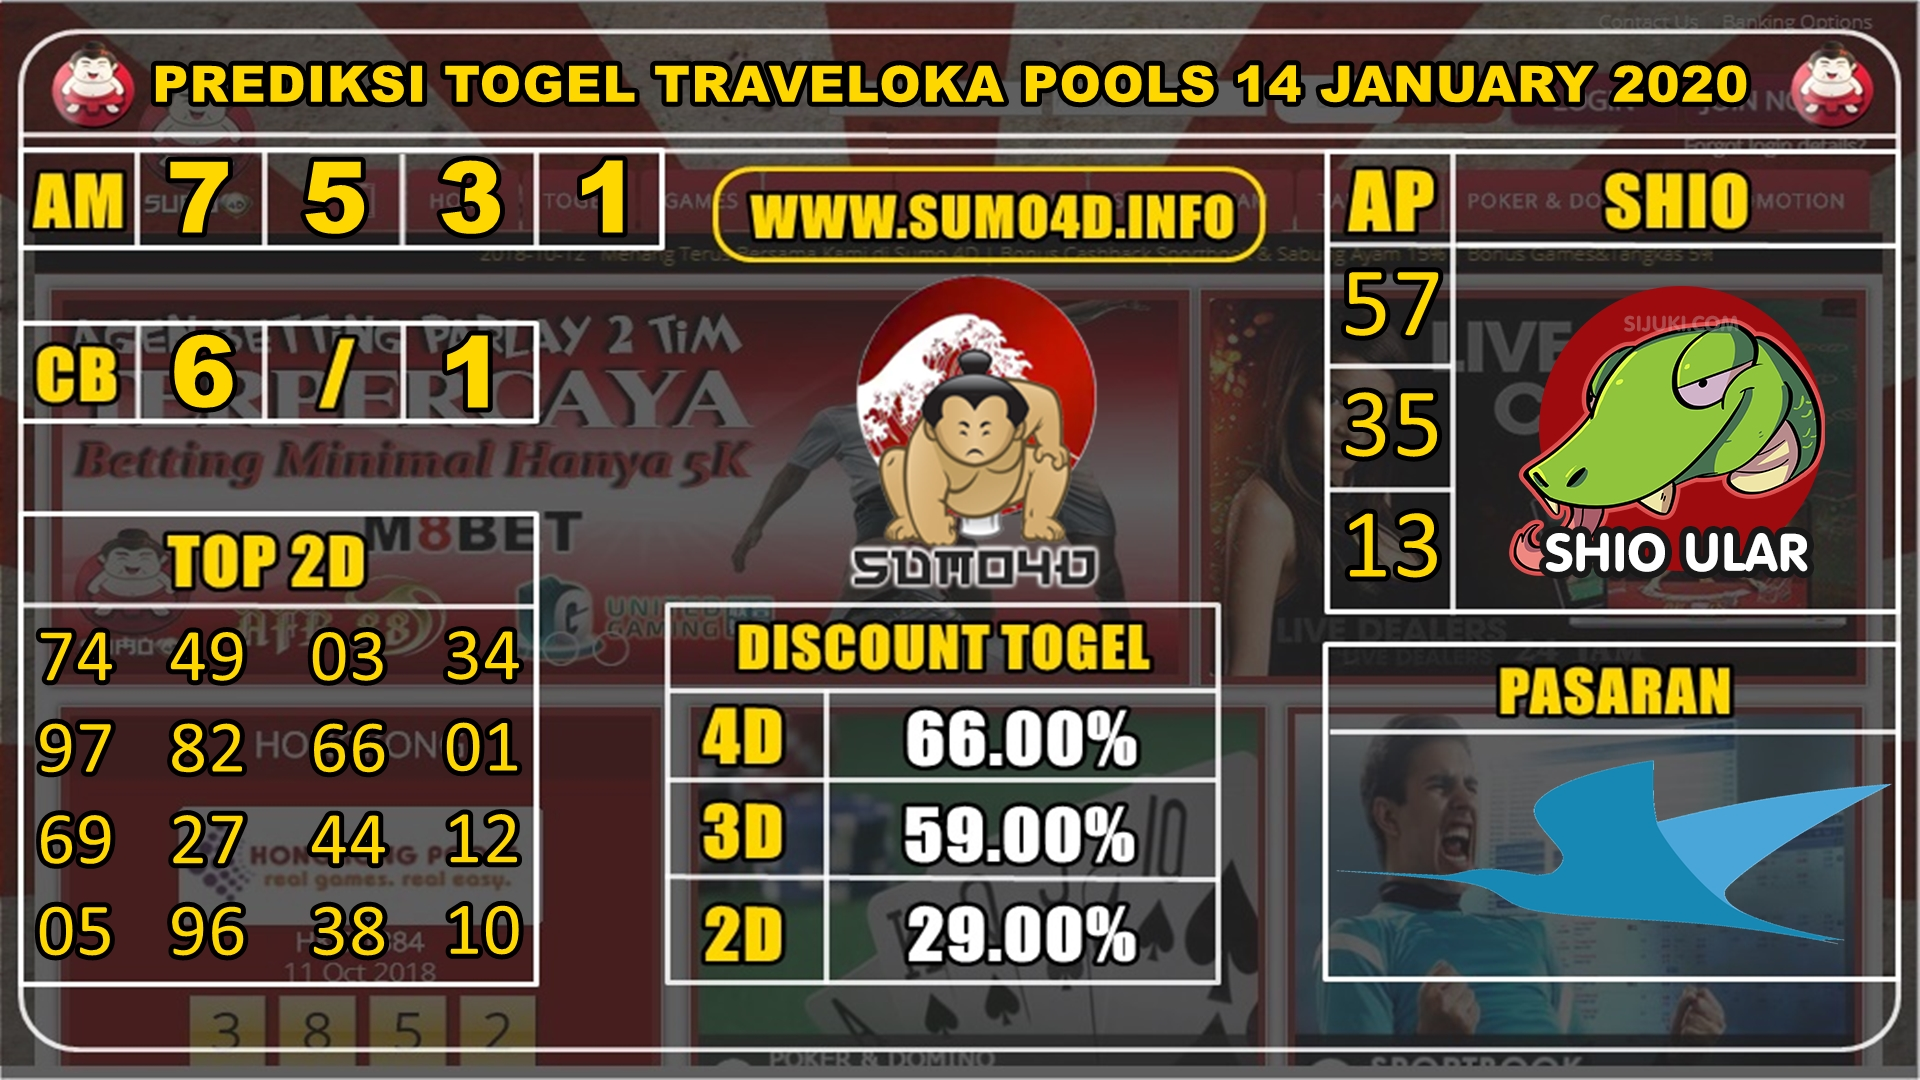 PREDIKSI TOGEL TRAVELOKA POOLS 14 JANUARY 2020